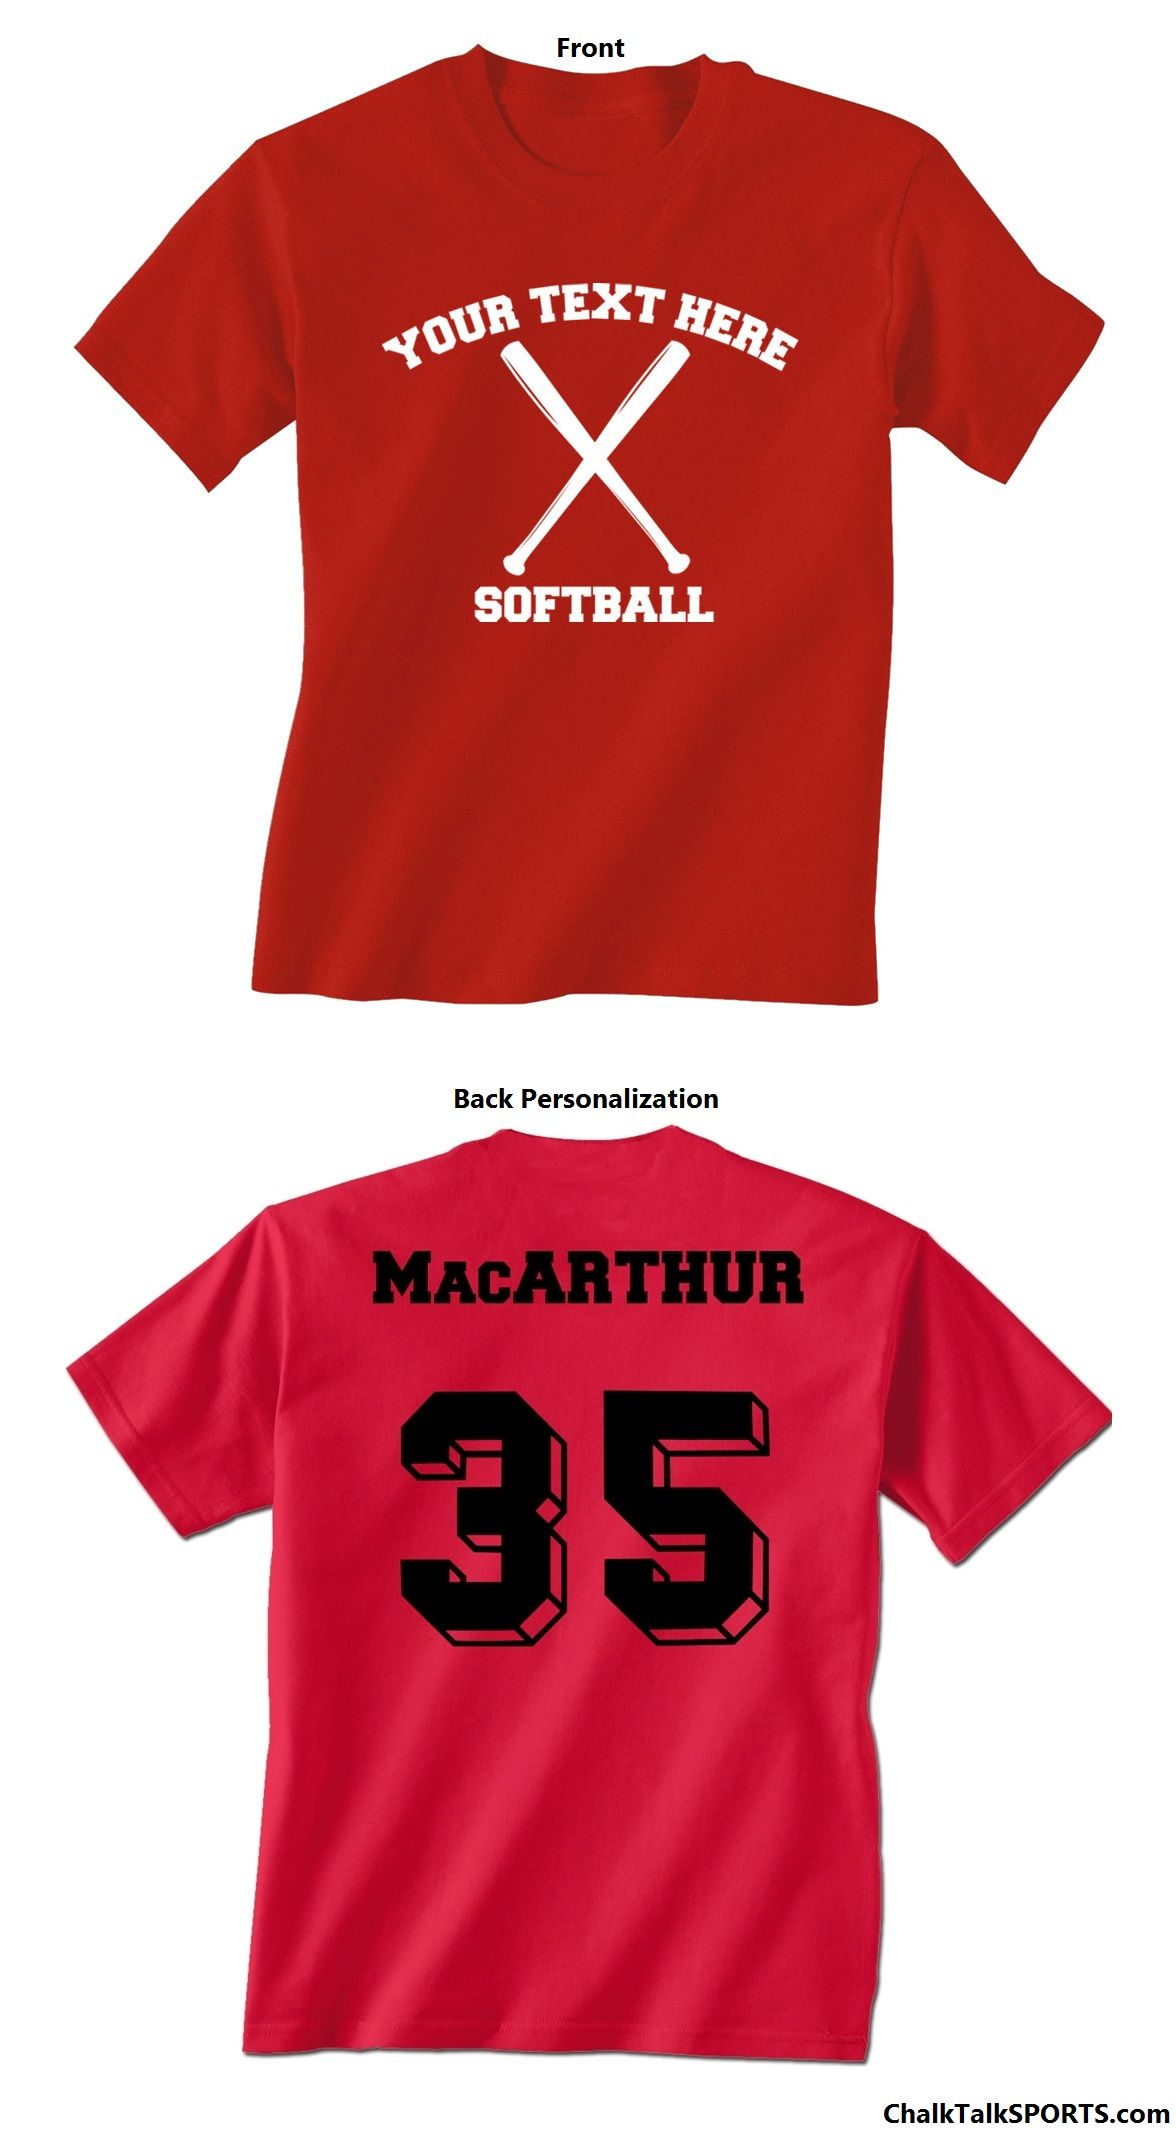 a810d4ff1 Create your own custom softball t-shirt! Add personal text - your name,  team name, number, a year, and so much more! Choose to personalize the back of  your ...